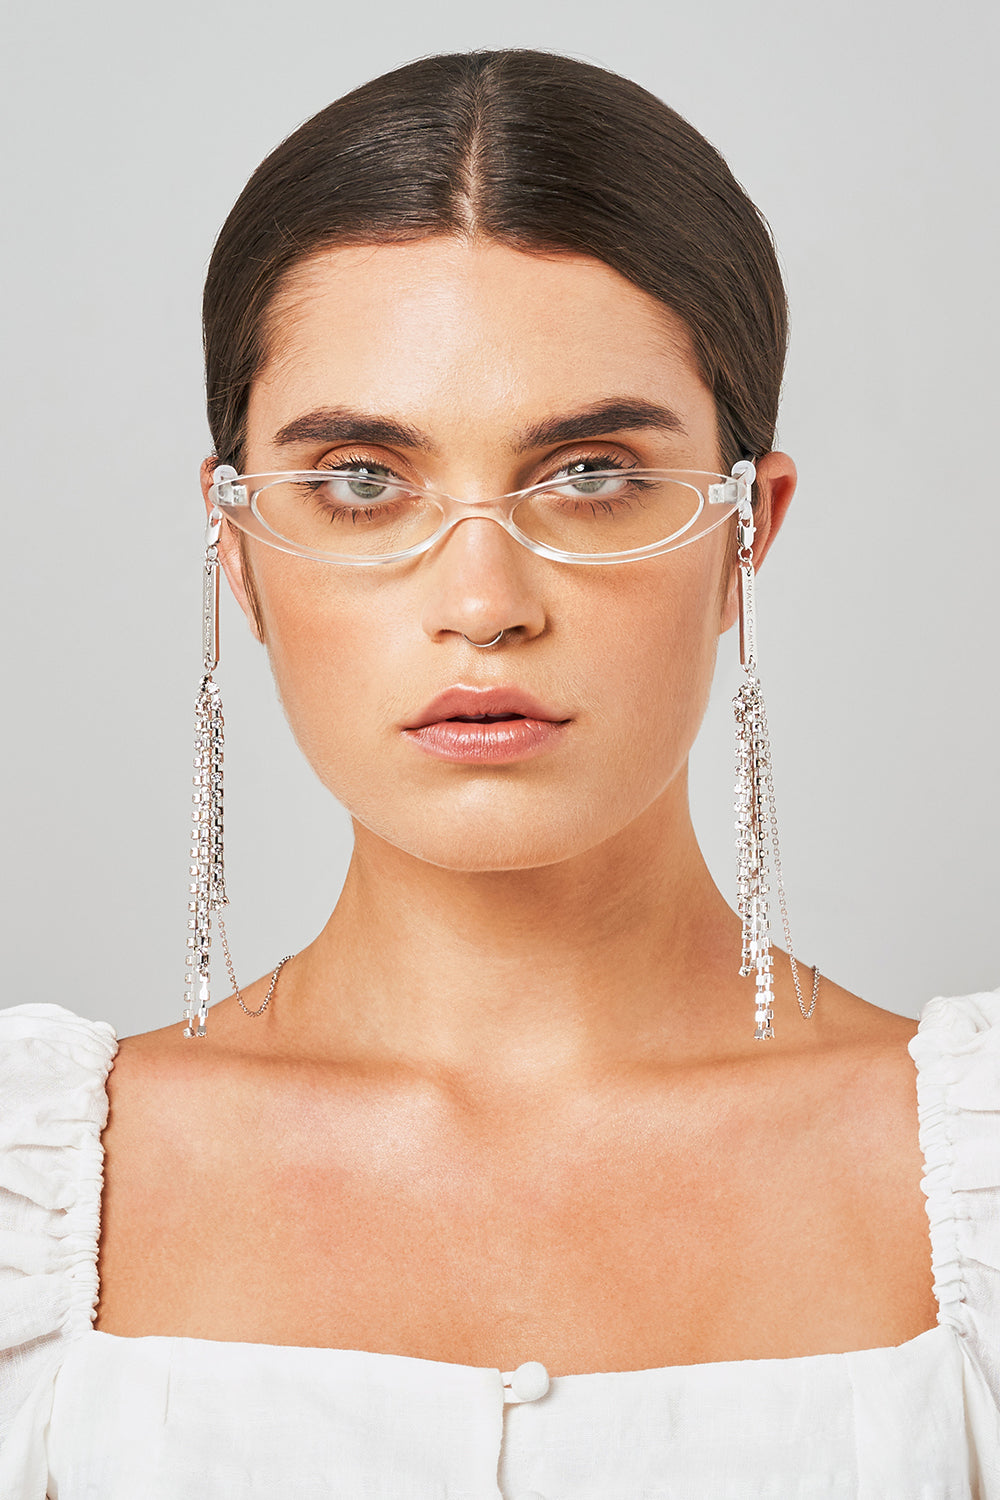 FRAME CHAIN - DISCO WHITE CRYSTAL in WHITE GOLD - Glasses chain